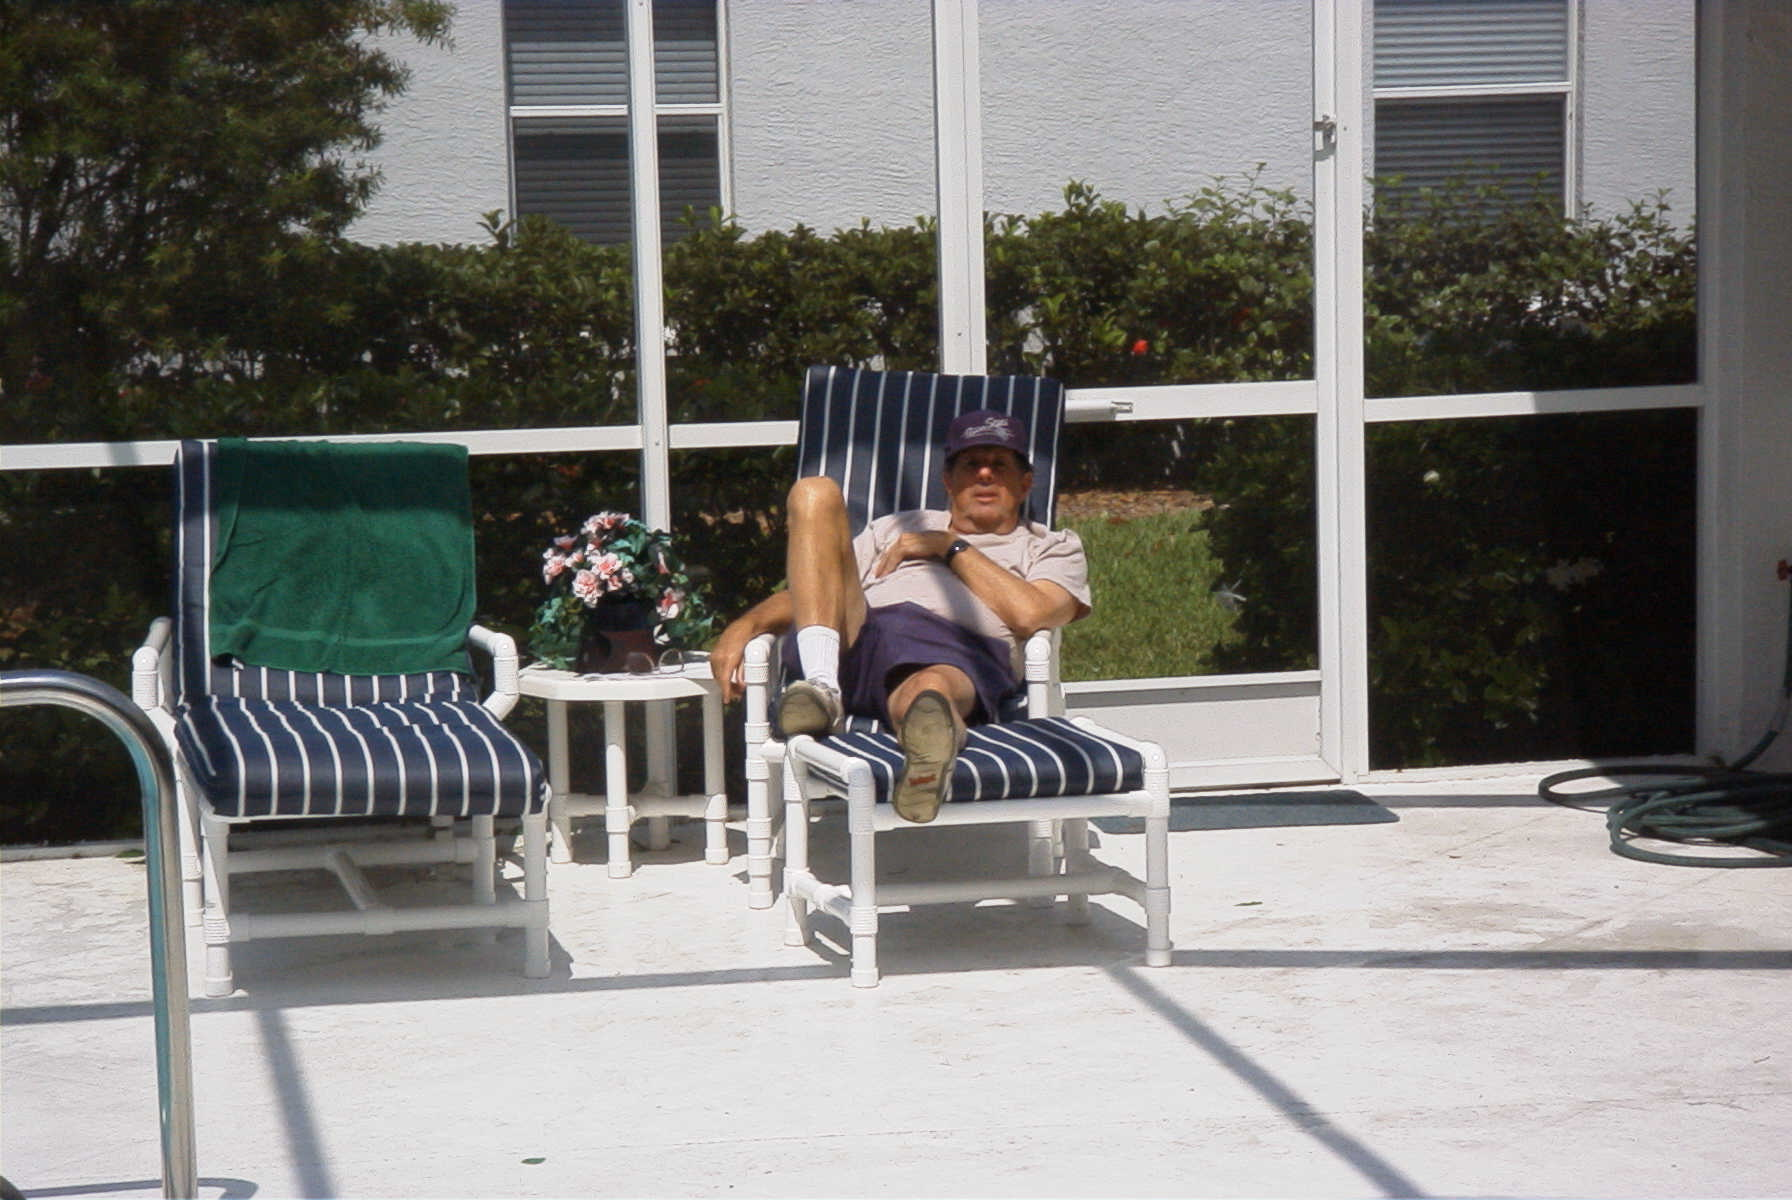 Joel relaxing by the pool. I miss him so much.